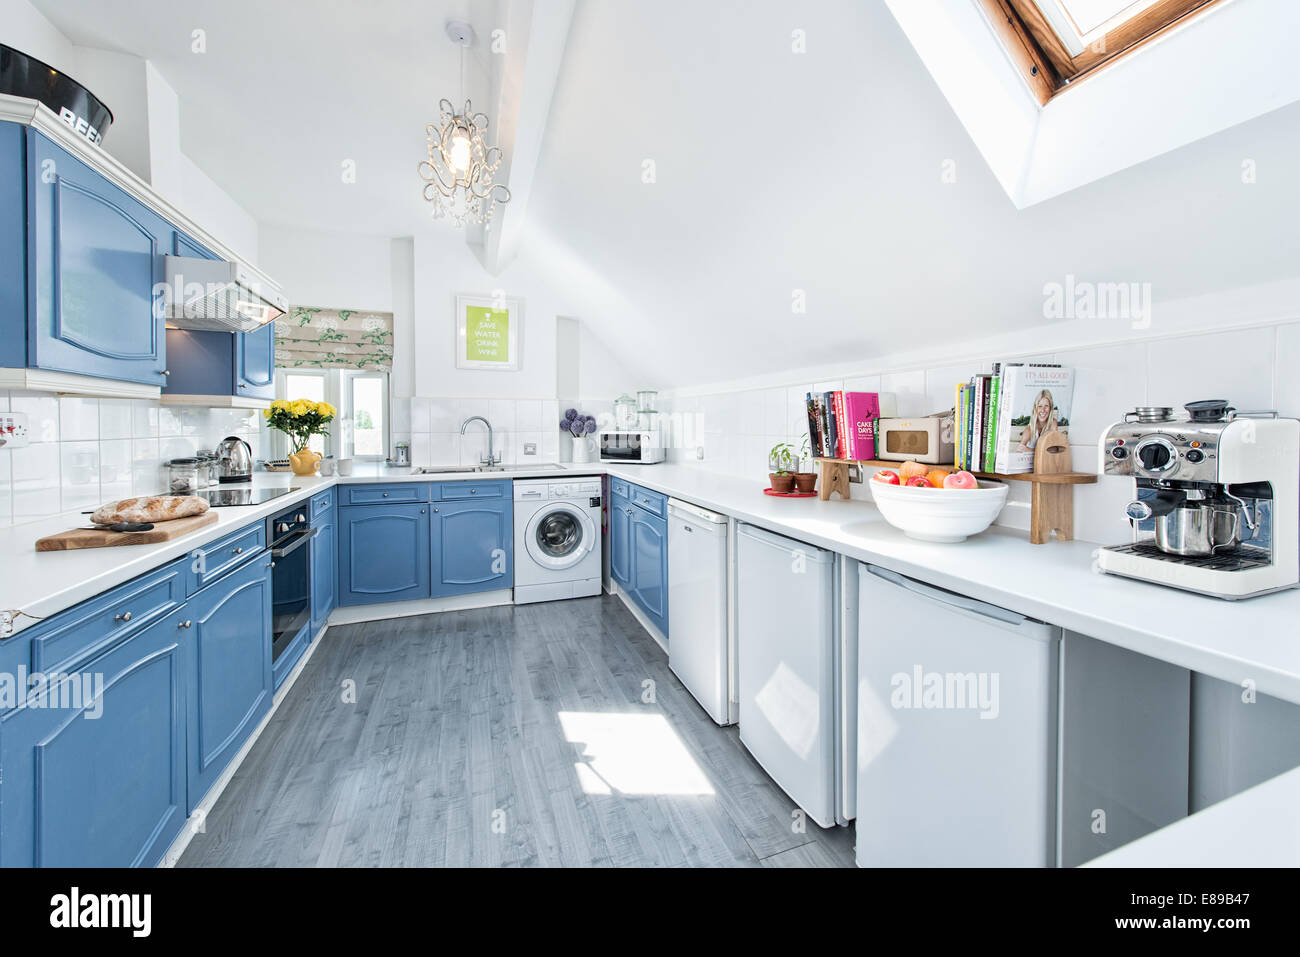 A light, airy, apartment kitchen in a loft conversion Stock Photo ...